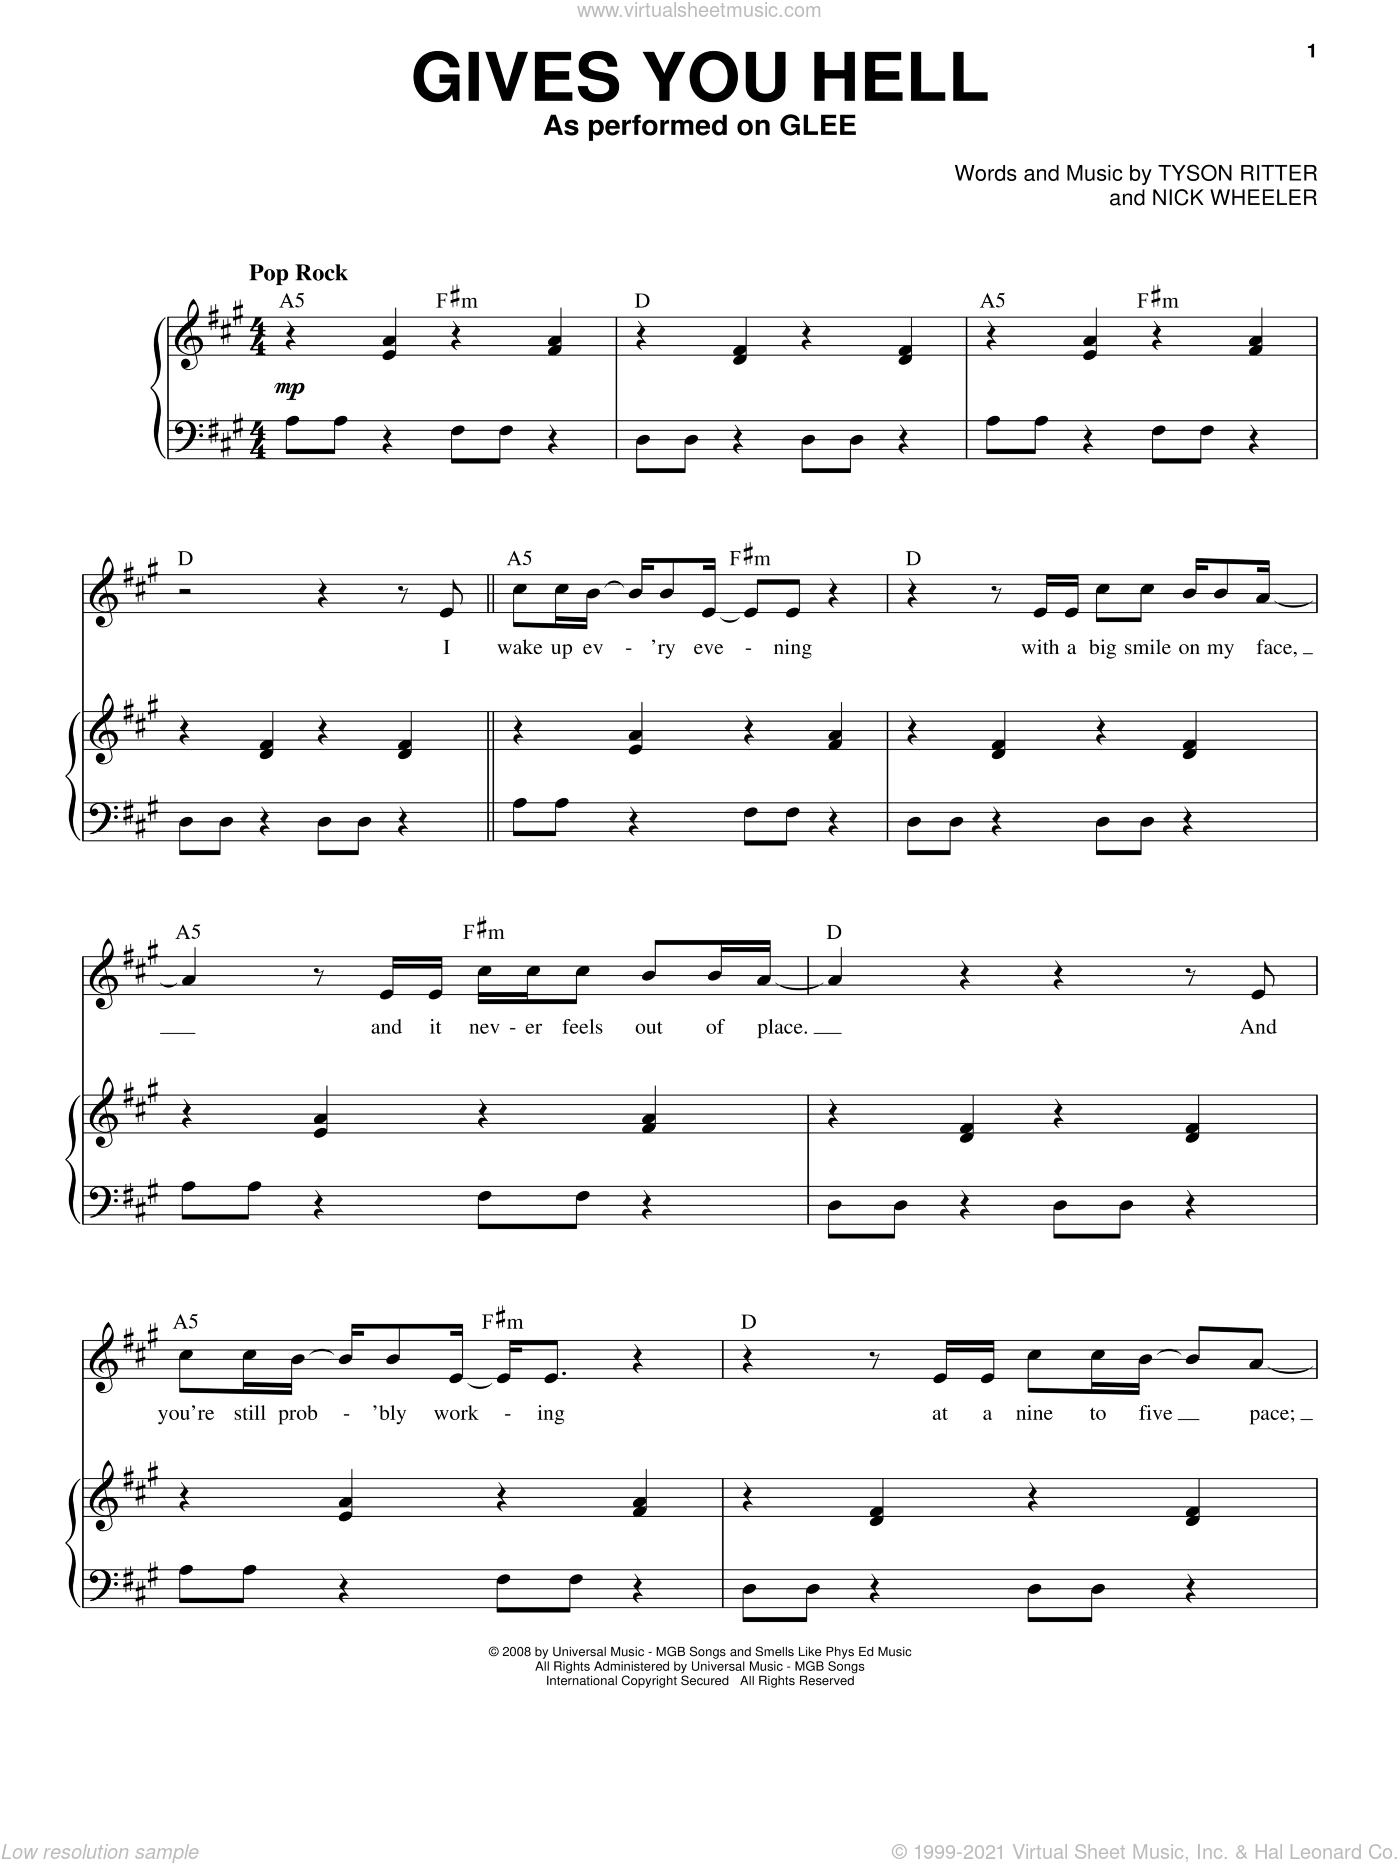 Gives You Hell sheet music for voice and piano by Glee Cast, Miscellaneous, The All-American Rejects, Nick Wheeler and Tyson Ritter, intermediate skill level